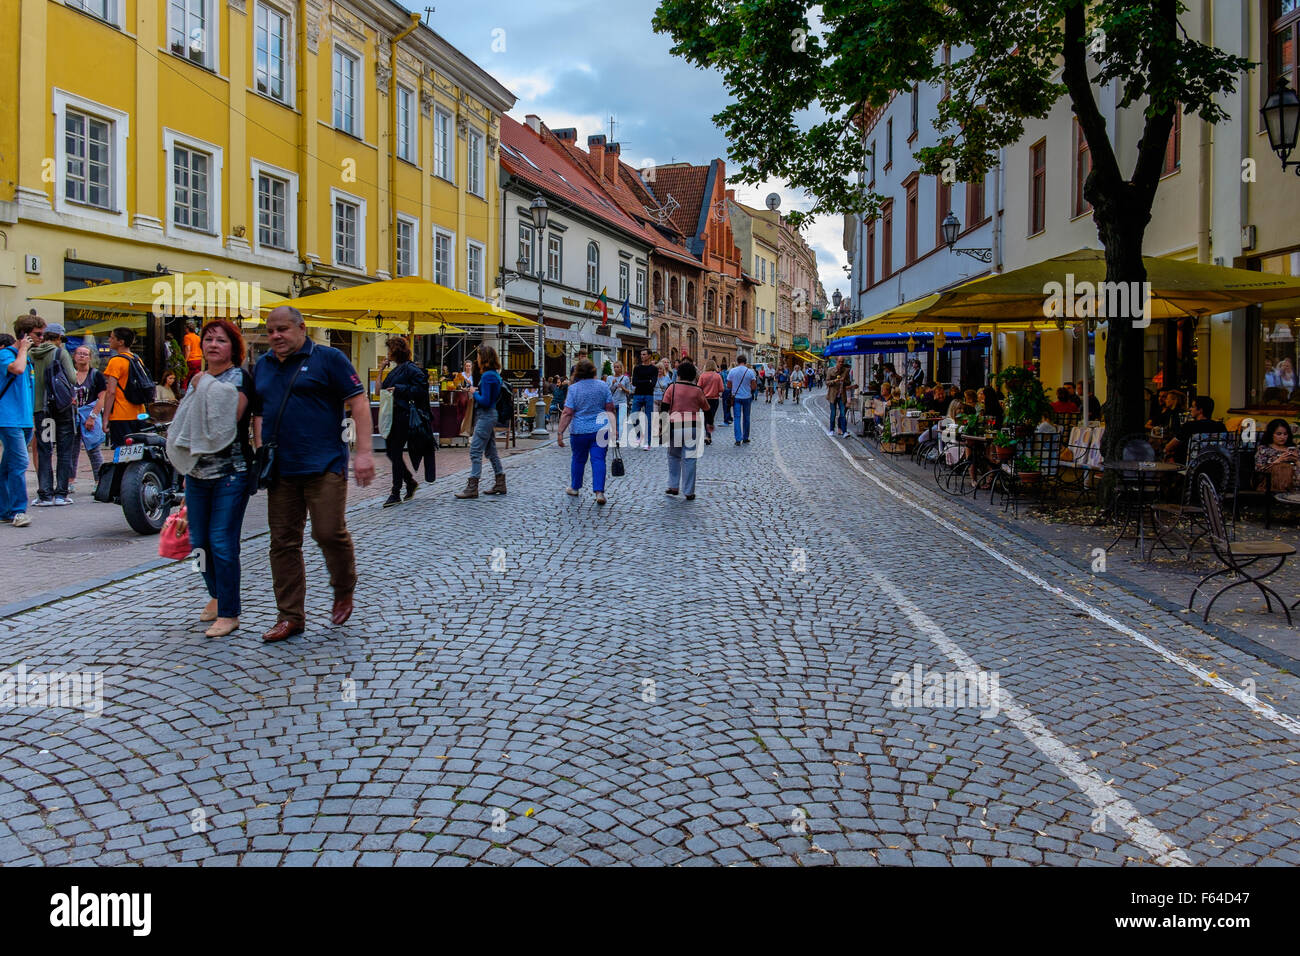 Street with sidewalk cafes in Vilnius, Lithuania - Stock Image